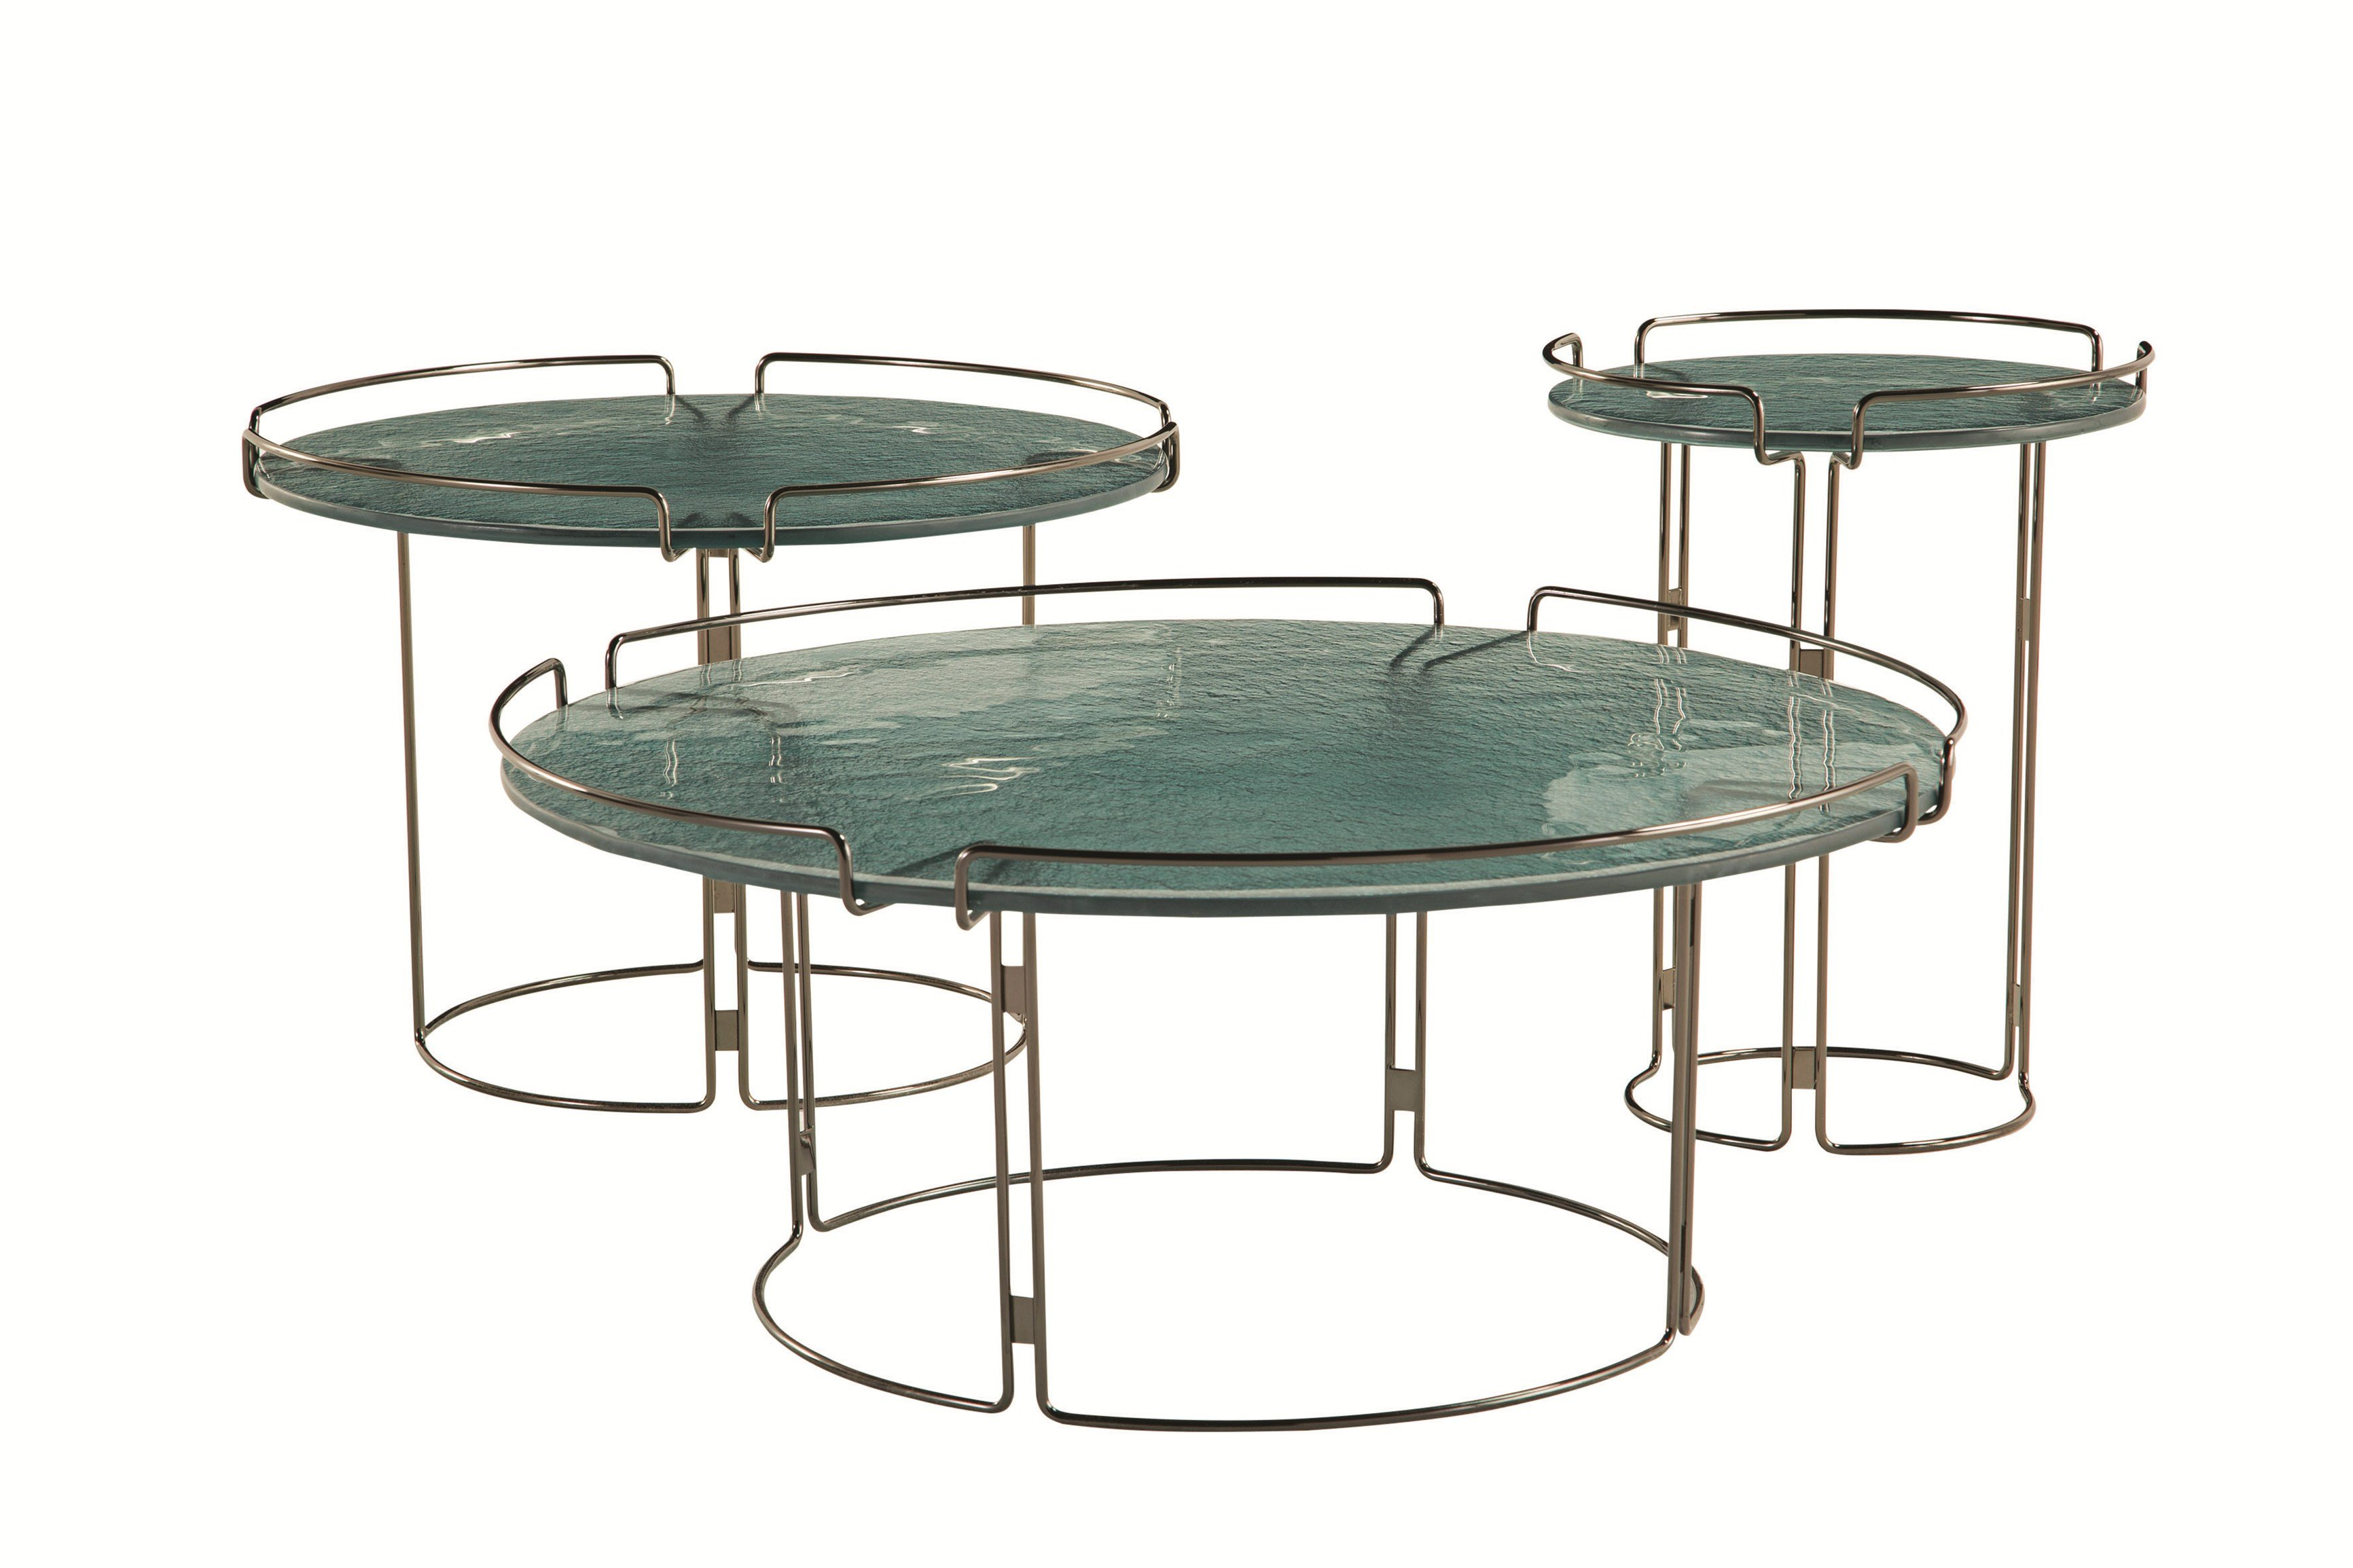 Table basse ronde en marbre bijou by roche bobois design - Table basse en verre roche bobois ...